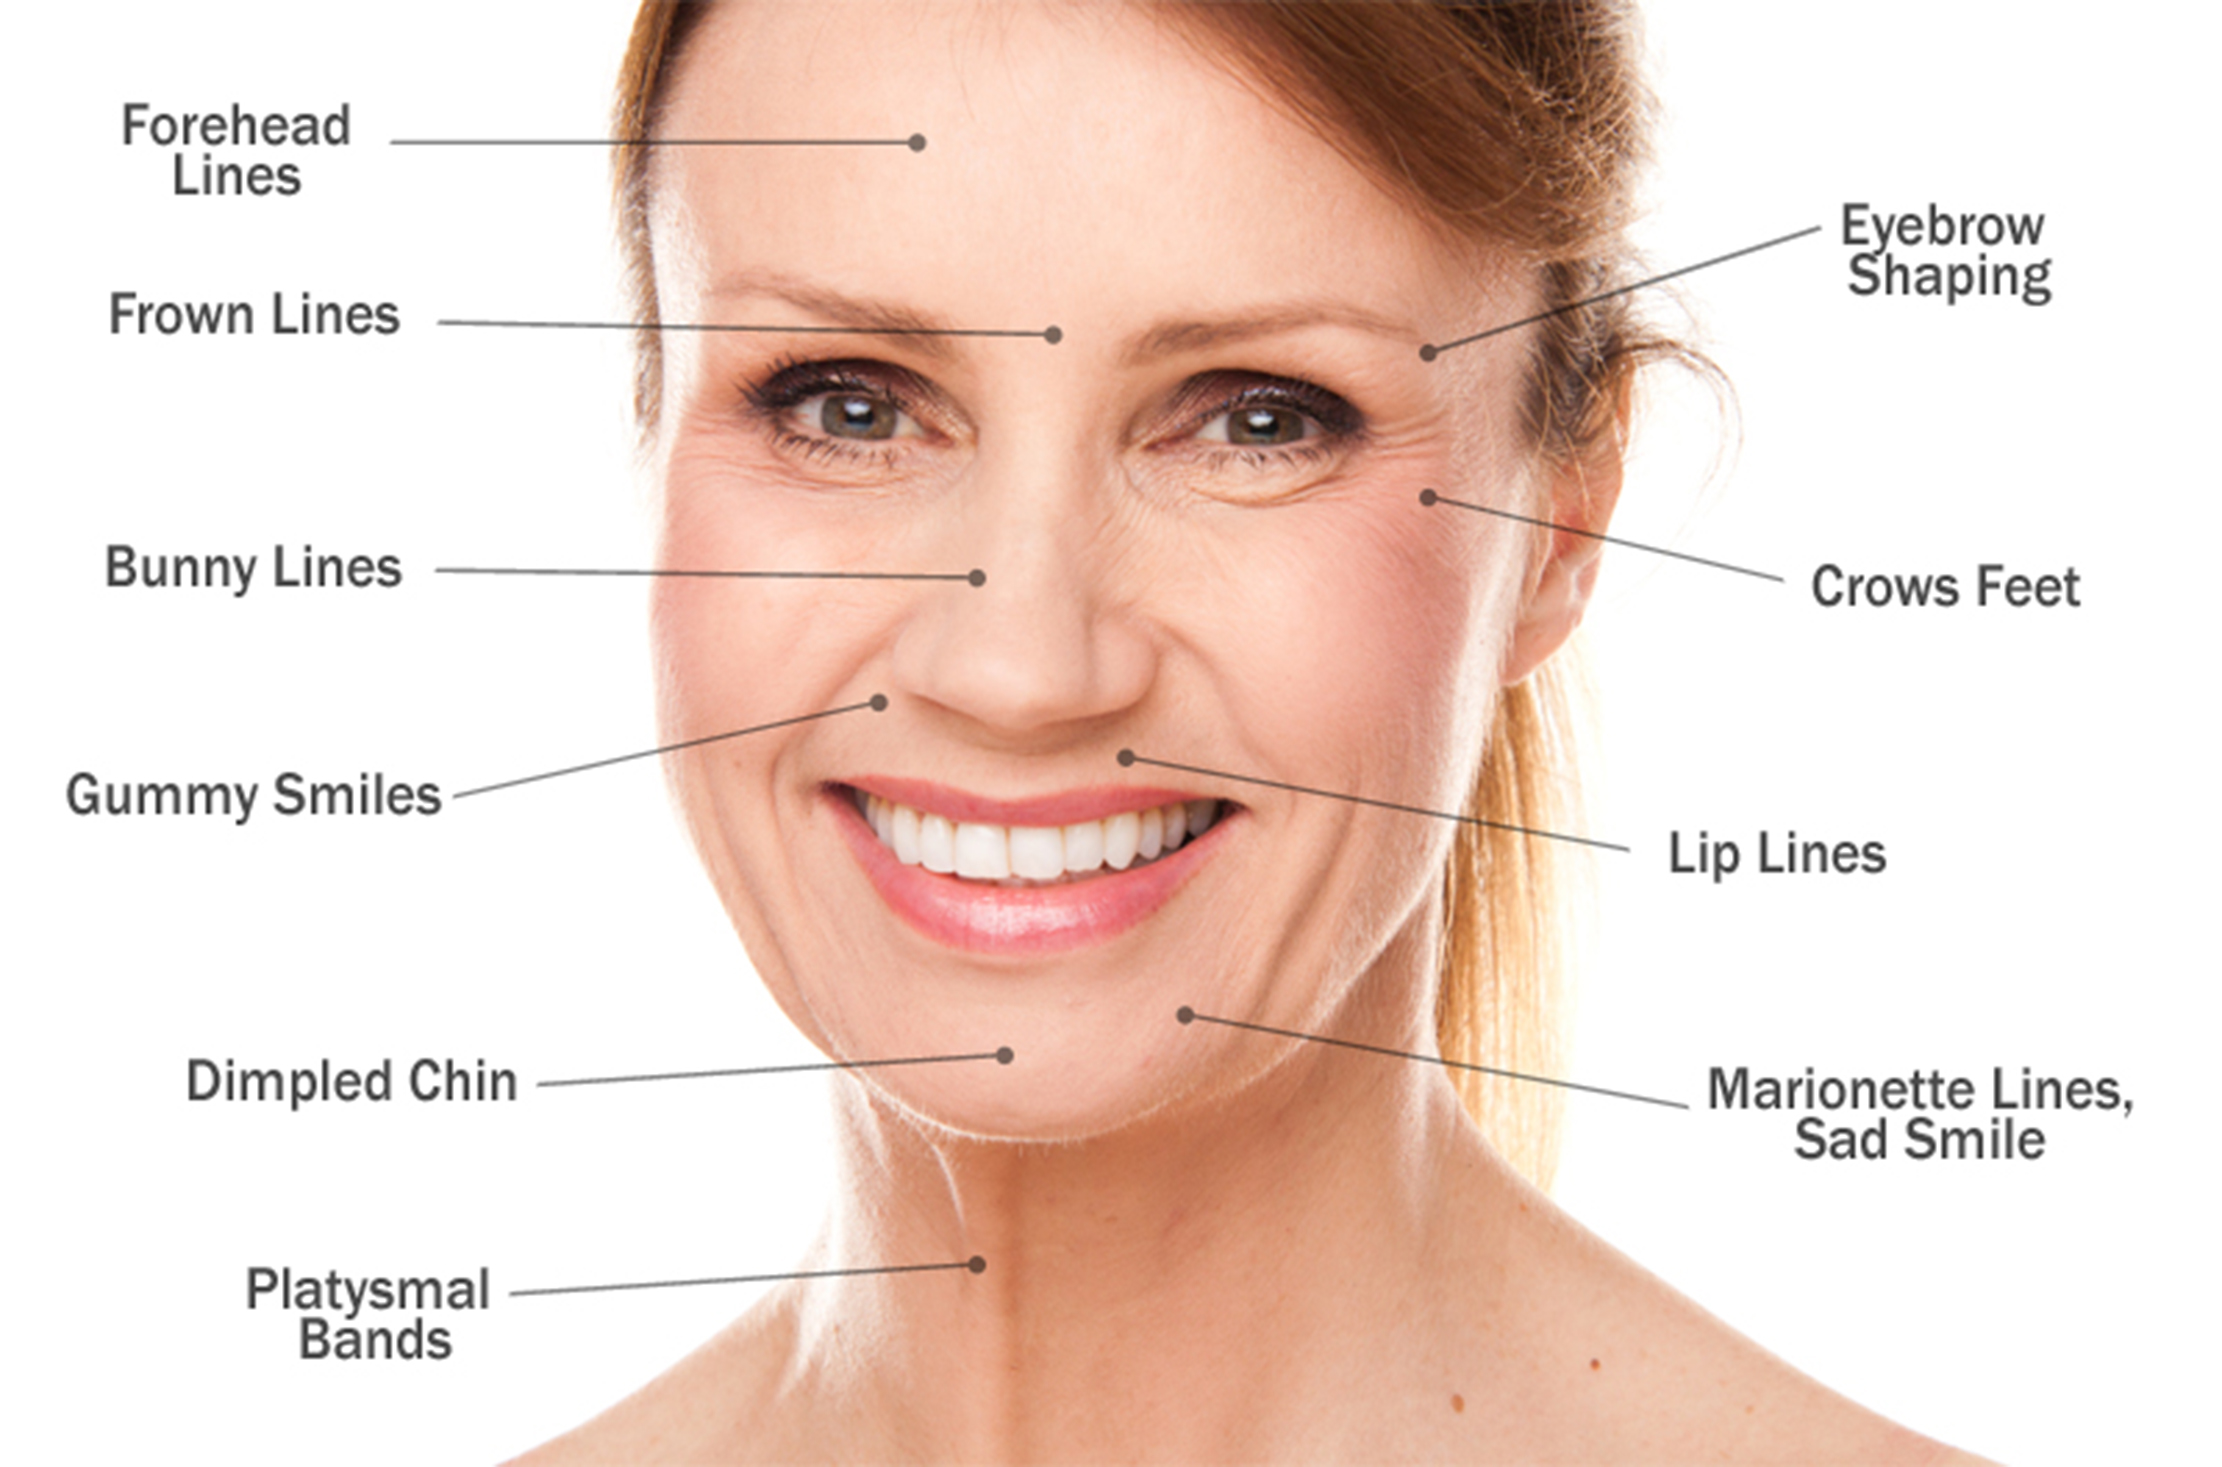 Hylaform:Hylaform Plus Dermal Fillers